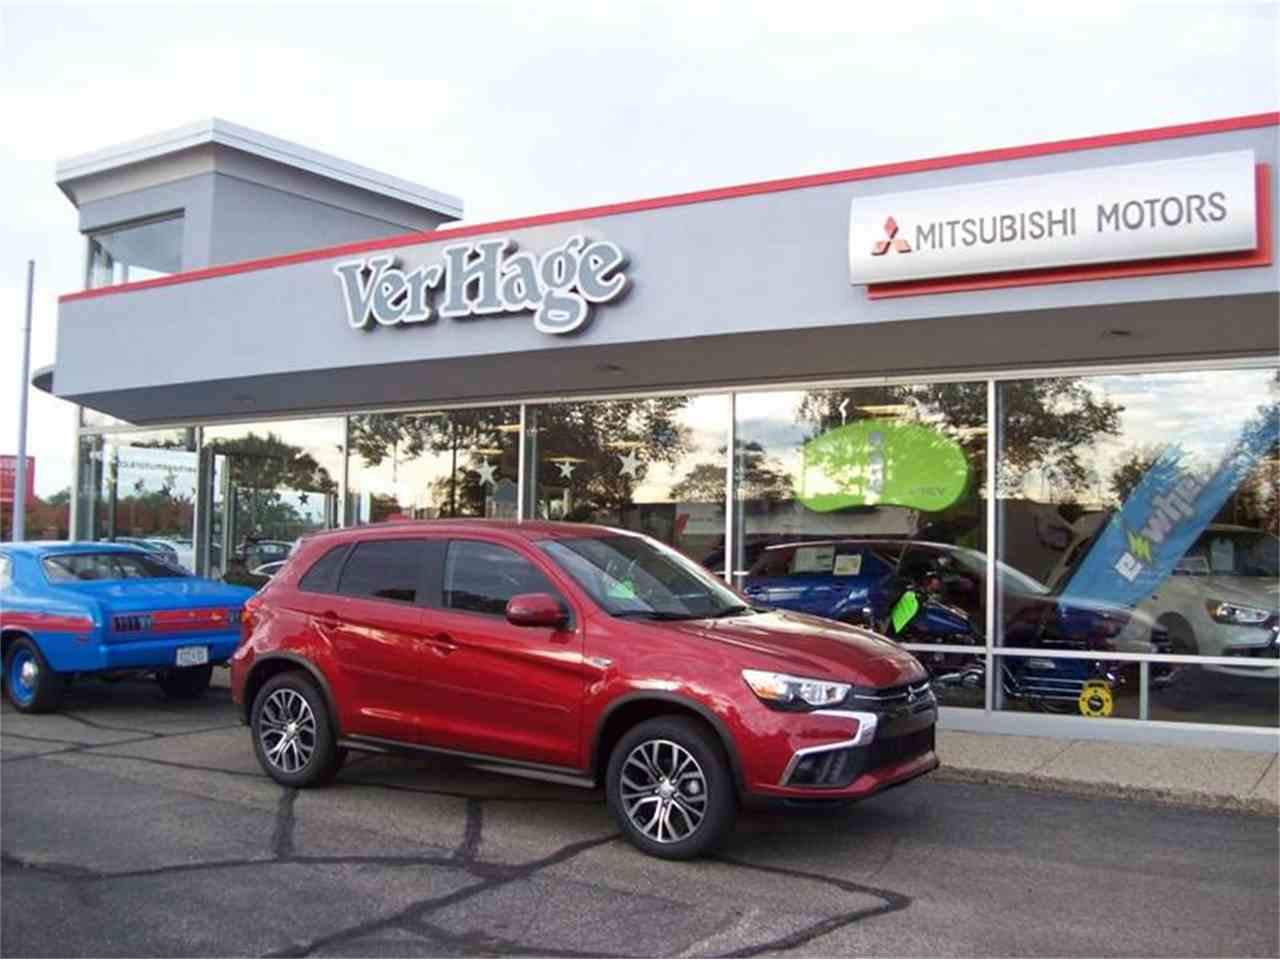 2018 Mitsubishi Outlander for Sale - CC-1033379